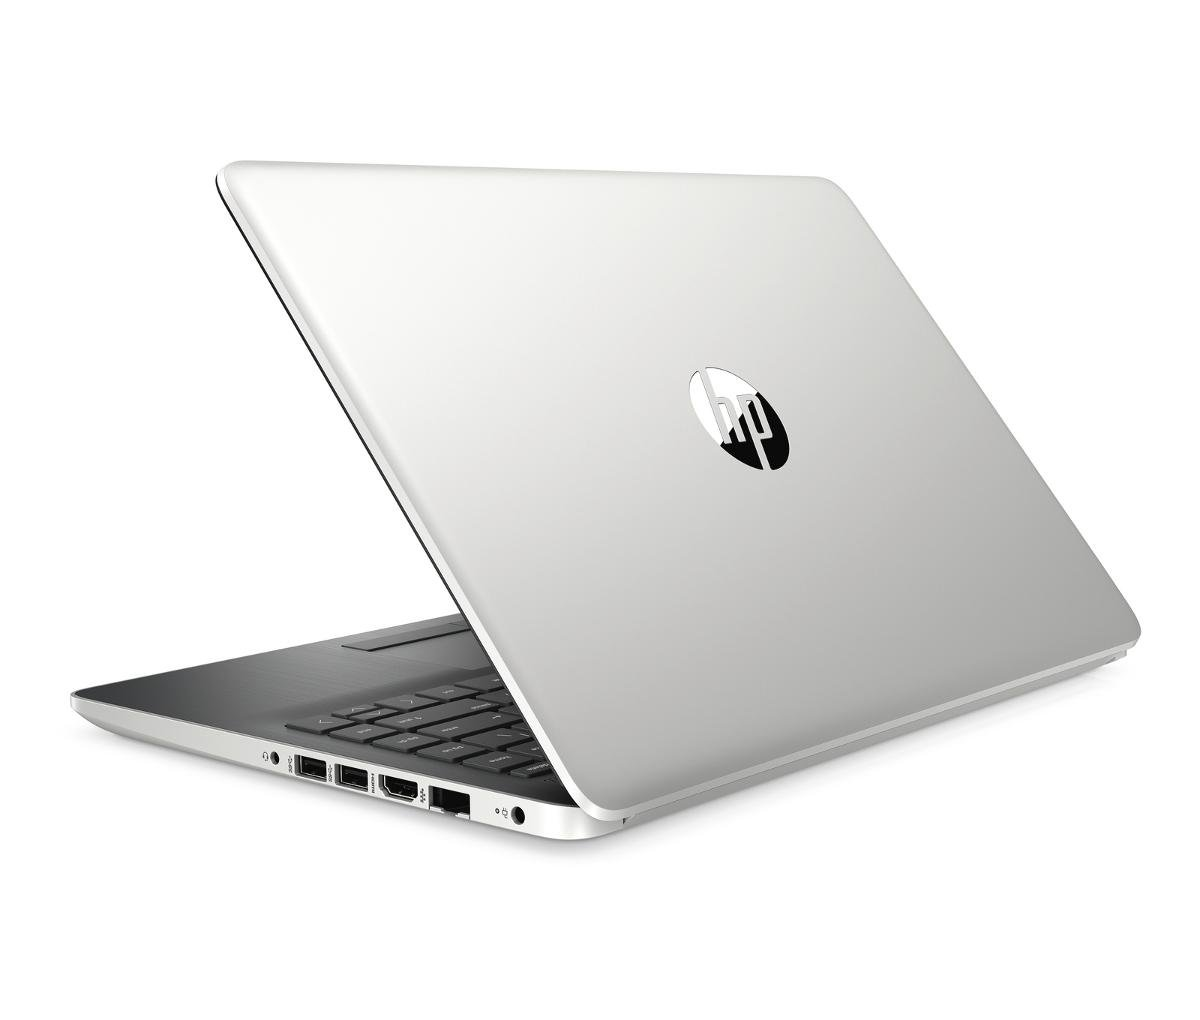 "Laptop HP 14-dk0017nw 7DK16EA, A9-9425, 8 GB RAM, 14"", 512 GB SSD, Windows 10 Home"